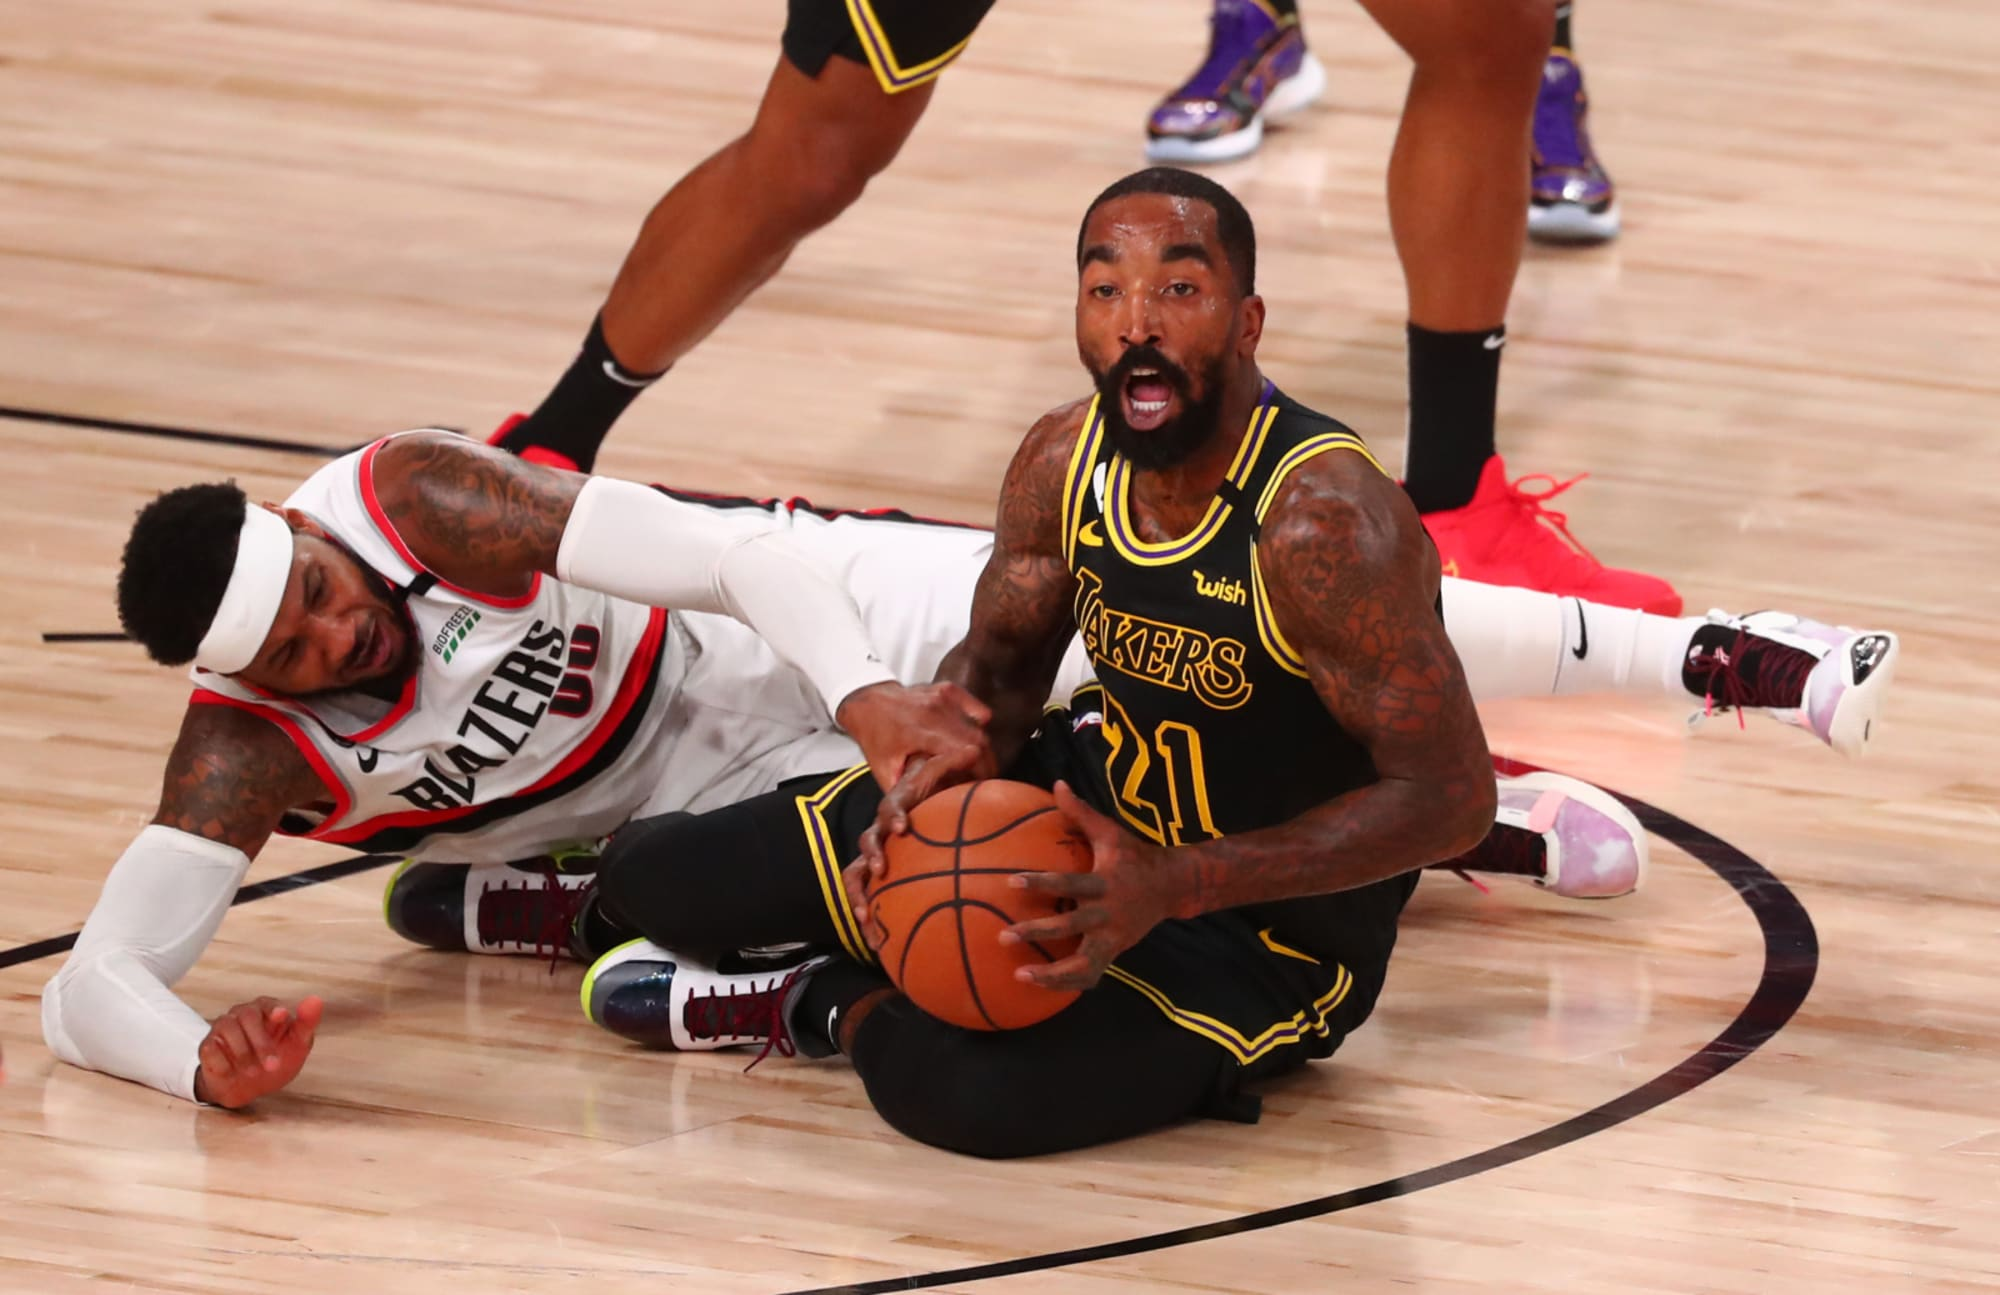 Lakers J.R. Smith names surprising Rockets player as hardest to guard